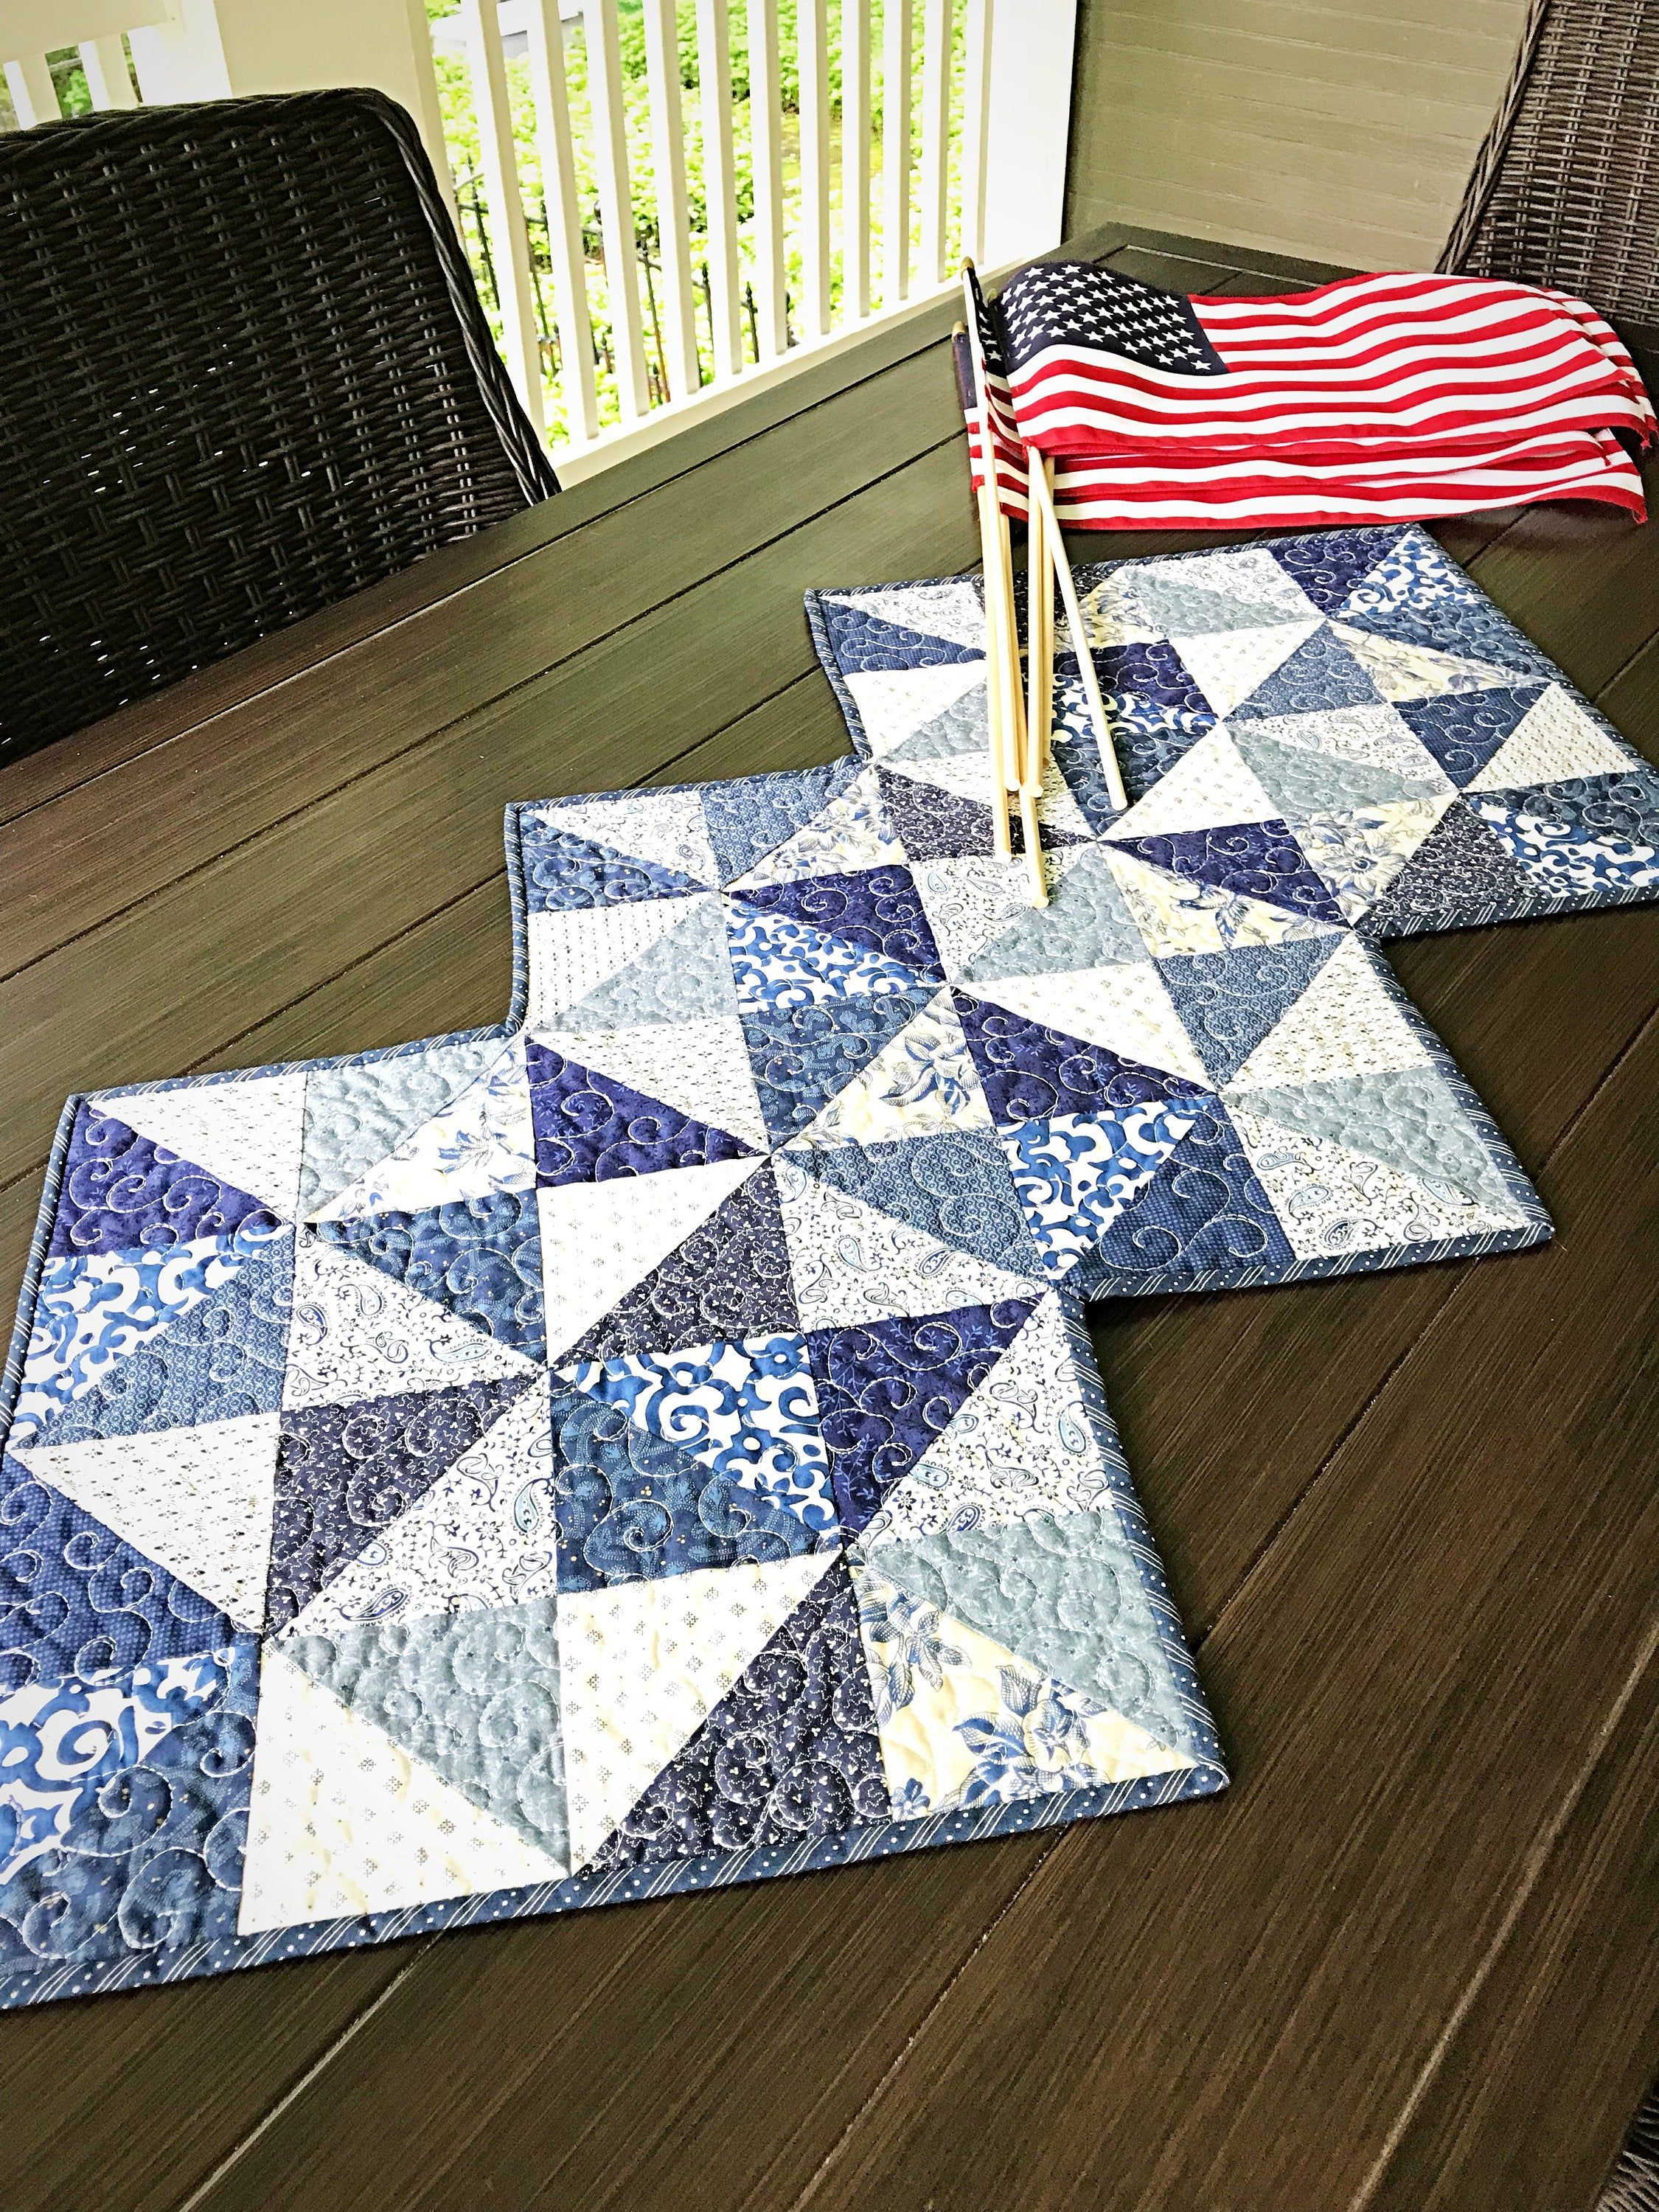 Easy quilt patterns pdf pinwheel quilt pattern table